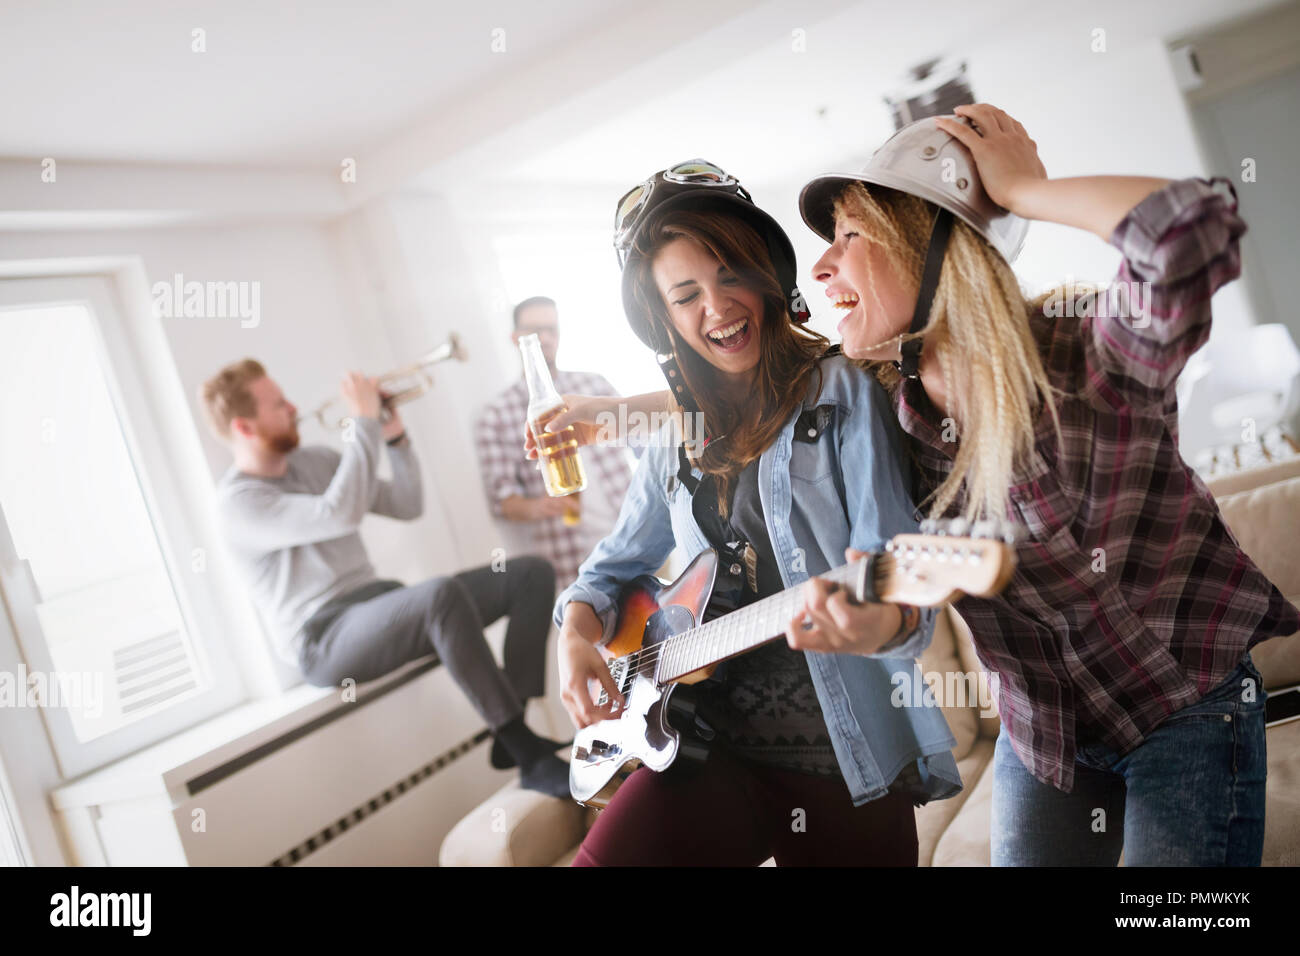 Group of friends having fun, partying and drinking - Stock Image